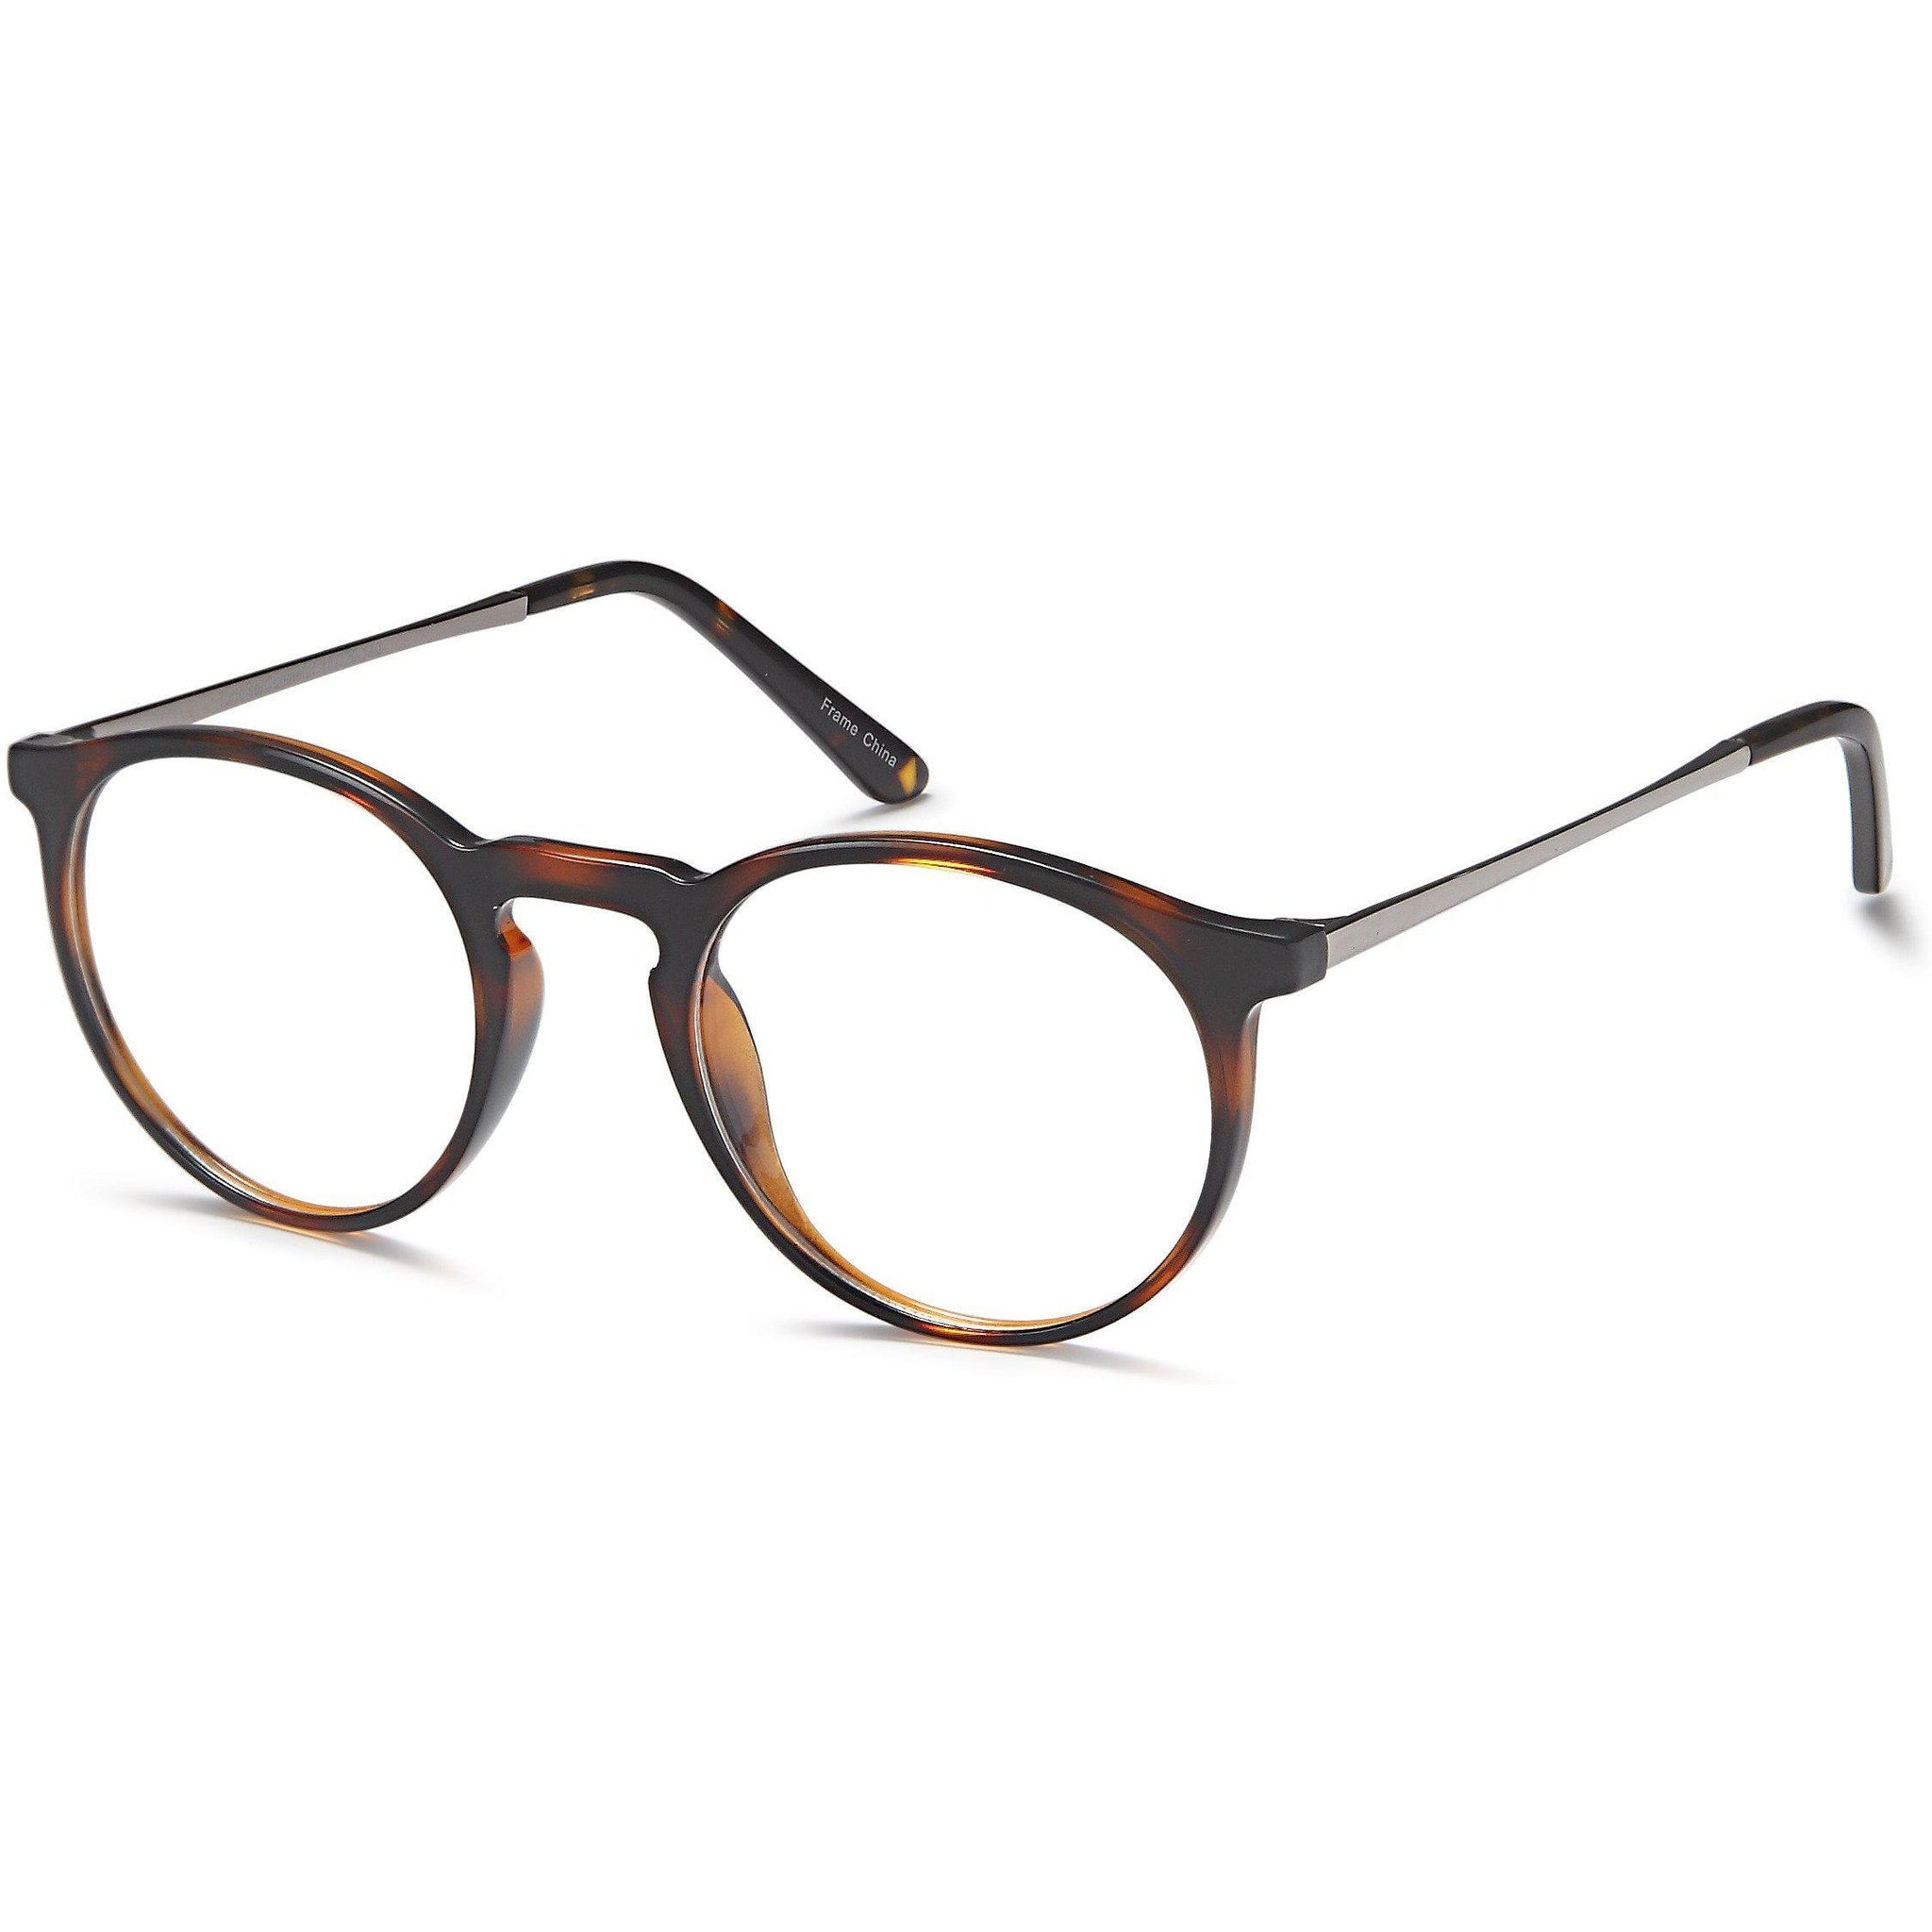 Di Caprio Prescription Glasses DC 176 Eyeglasses Frame - timetoshade